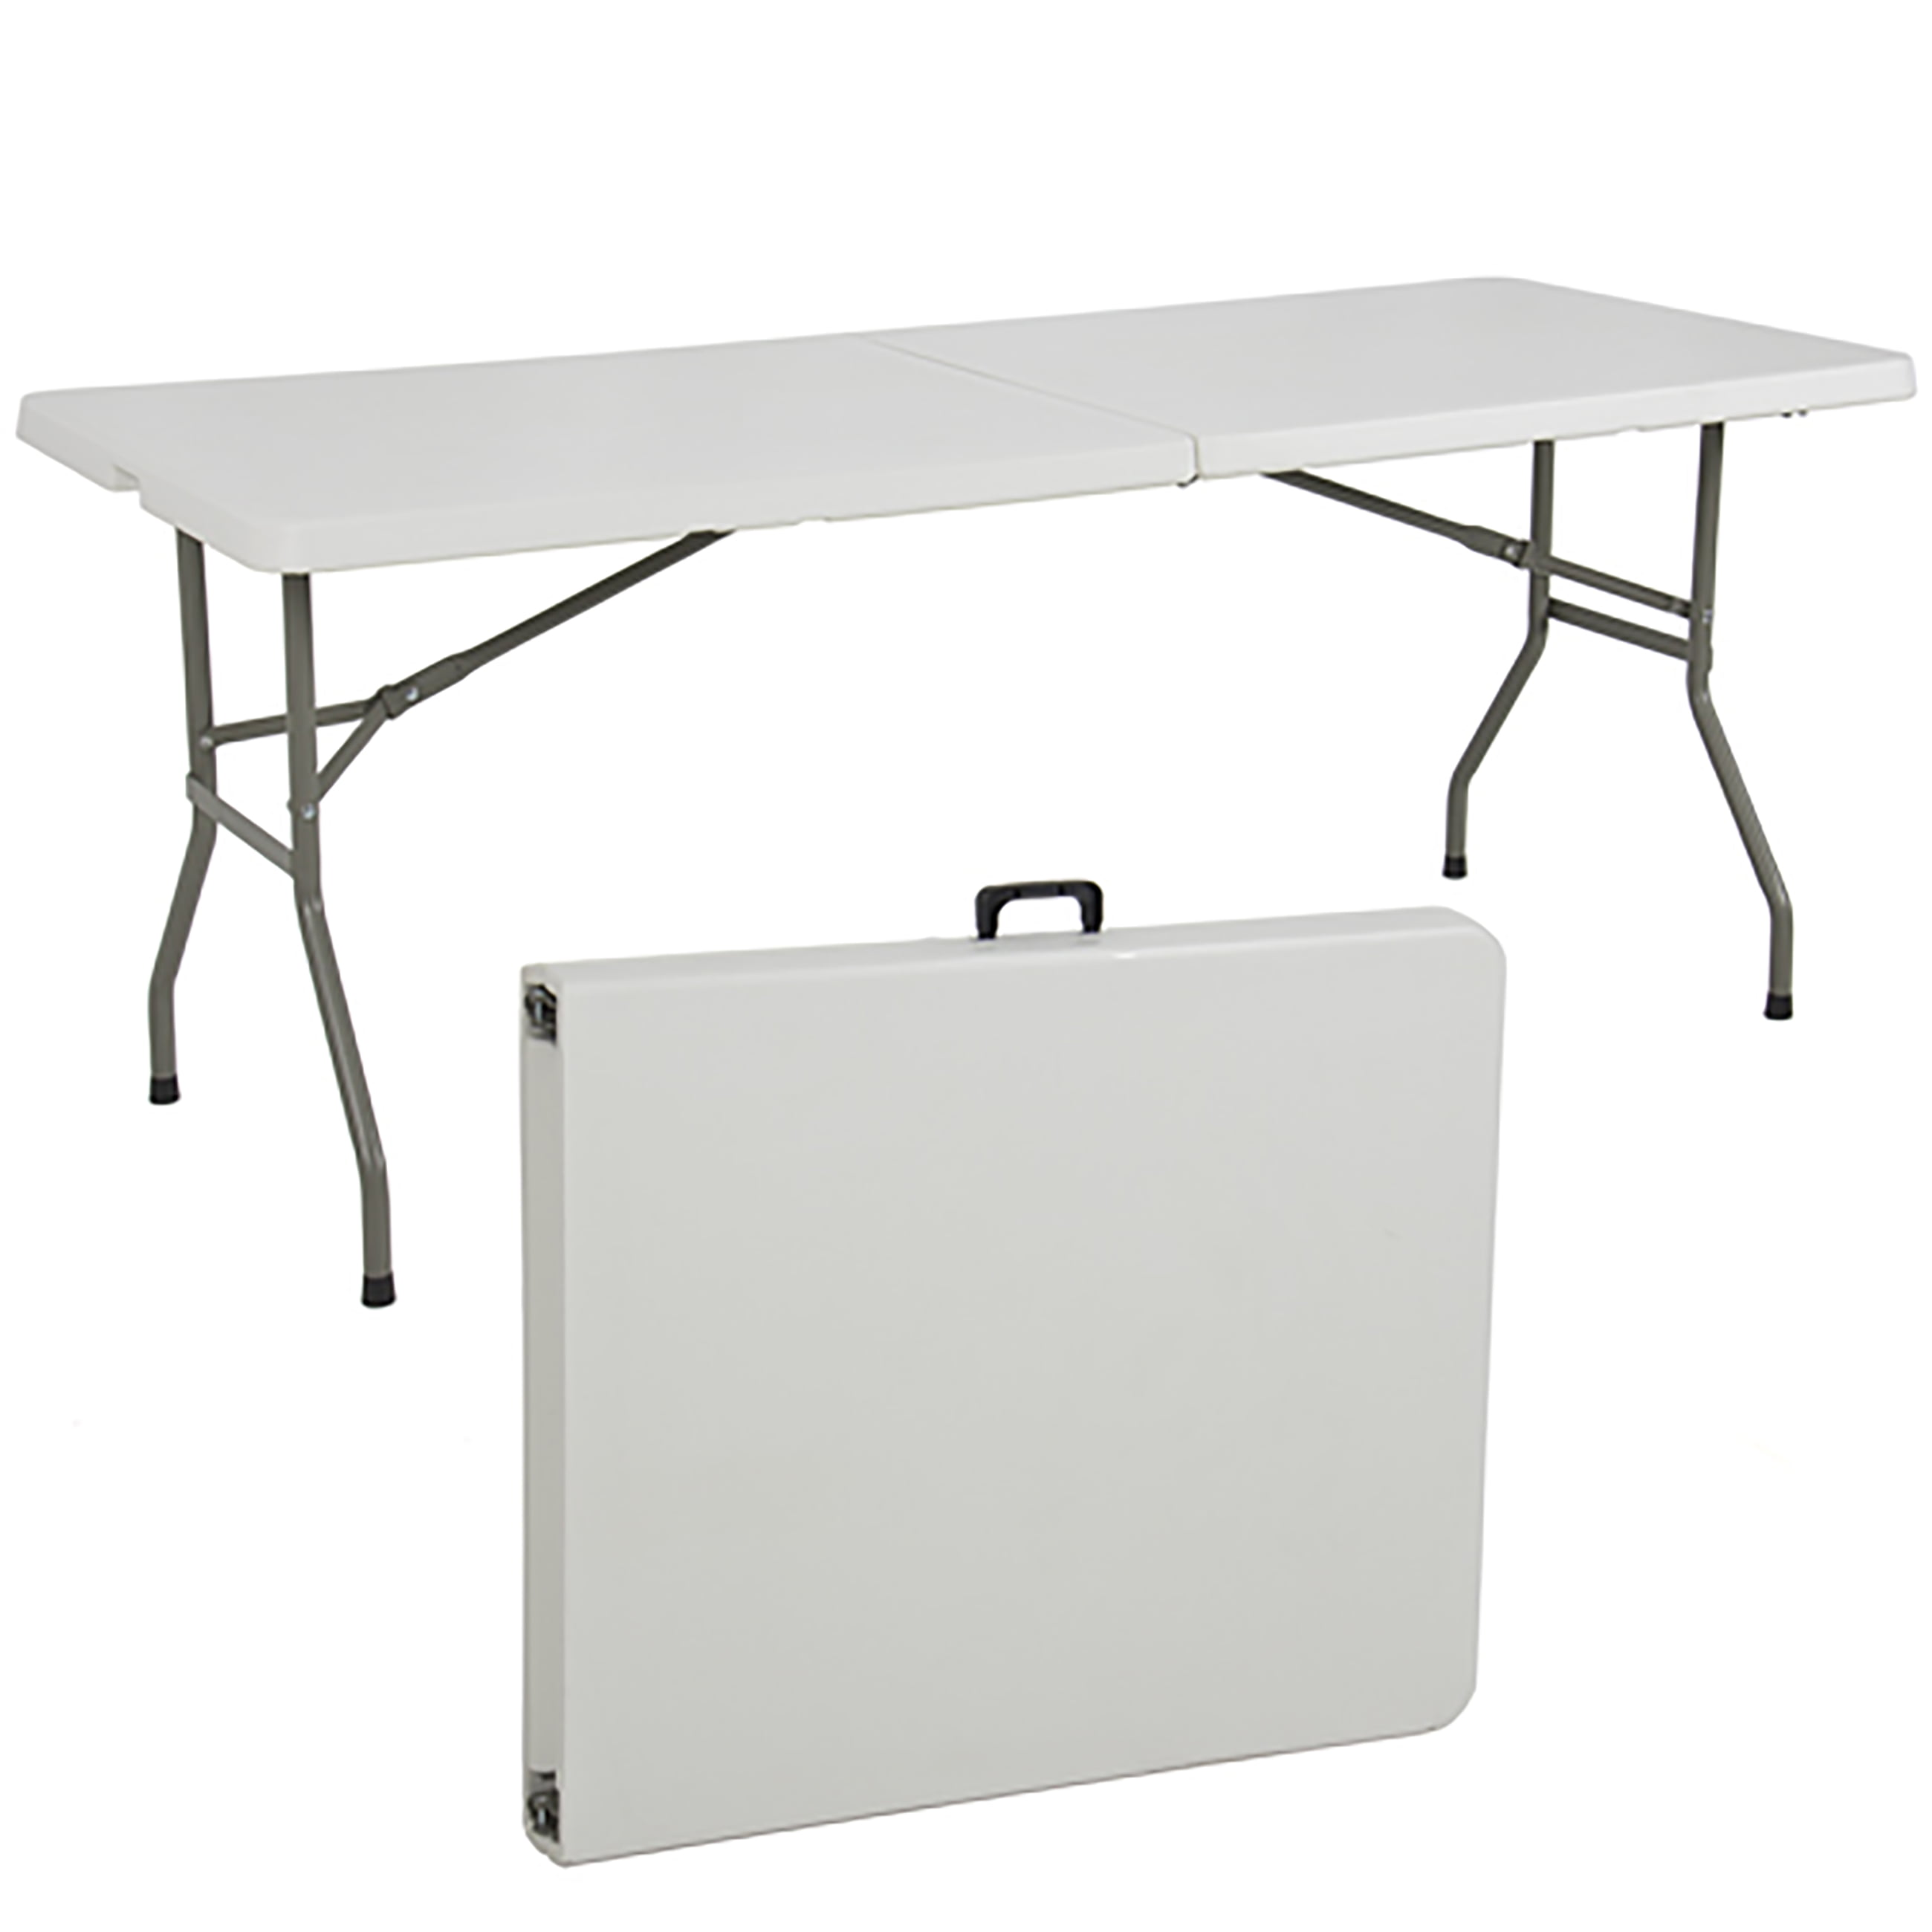 Click here to buy Best Choice Products Folding Table 6